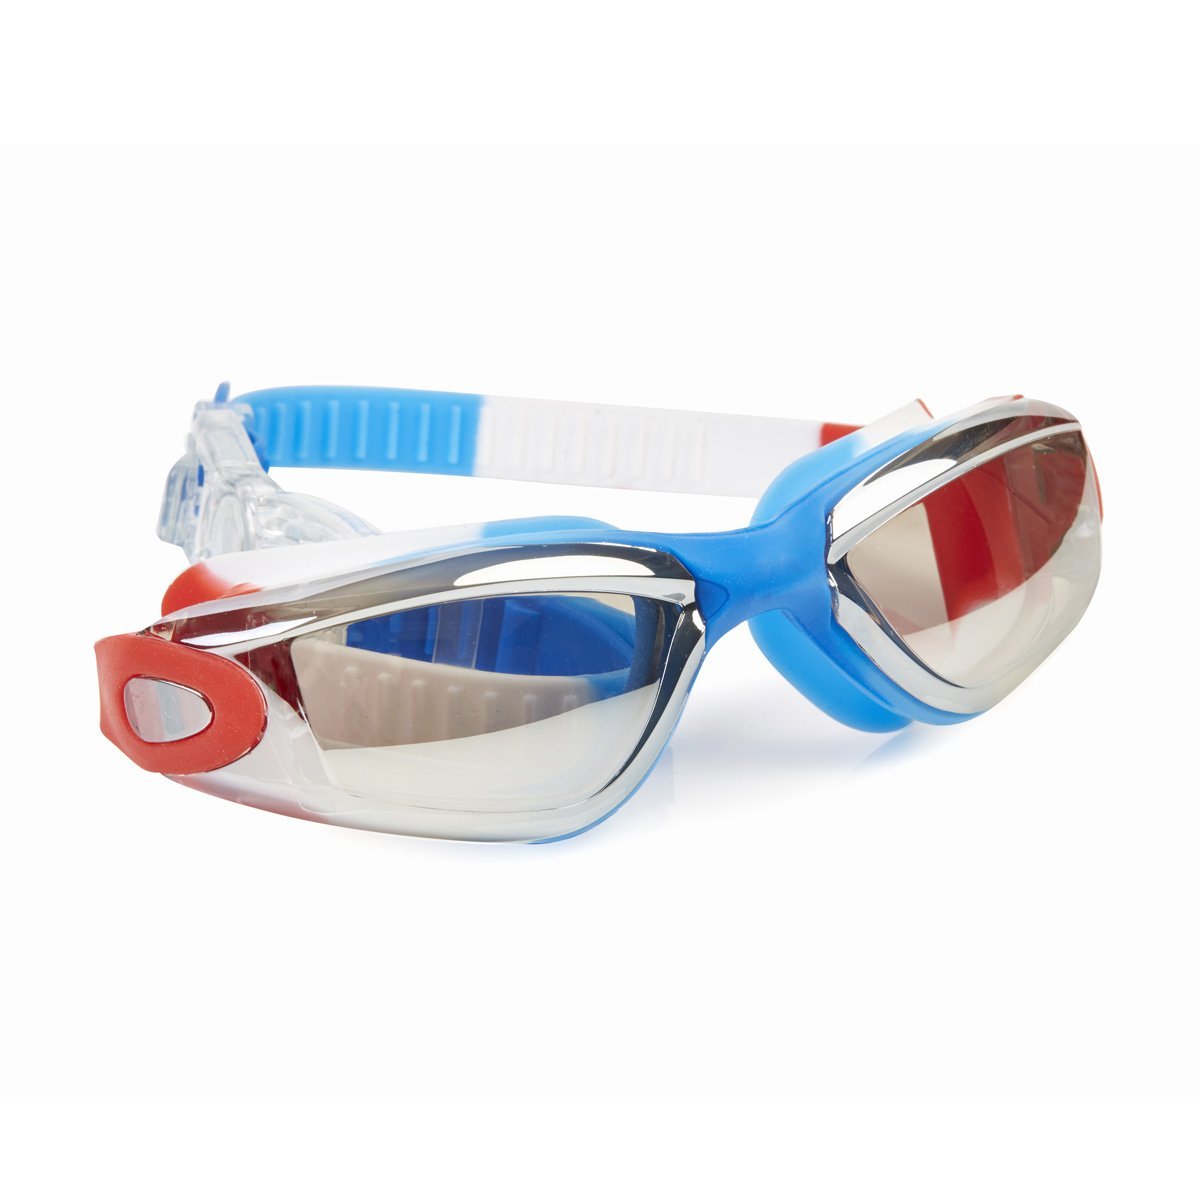 New Camp Color War Swimming Goggles For Kids by Bling2O - Anti Fog, No Leak, Non Slip and UV Protection - USA Red White and Blue Colored Fun Water Accessory Includes Hard Case